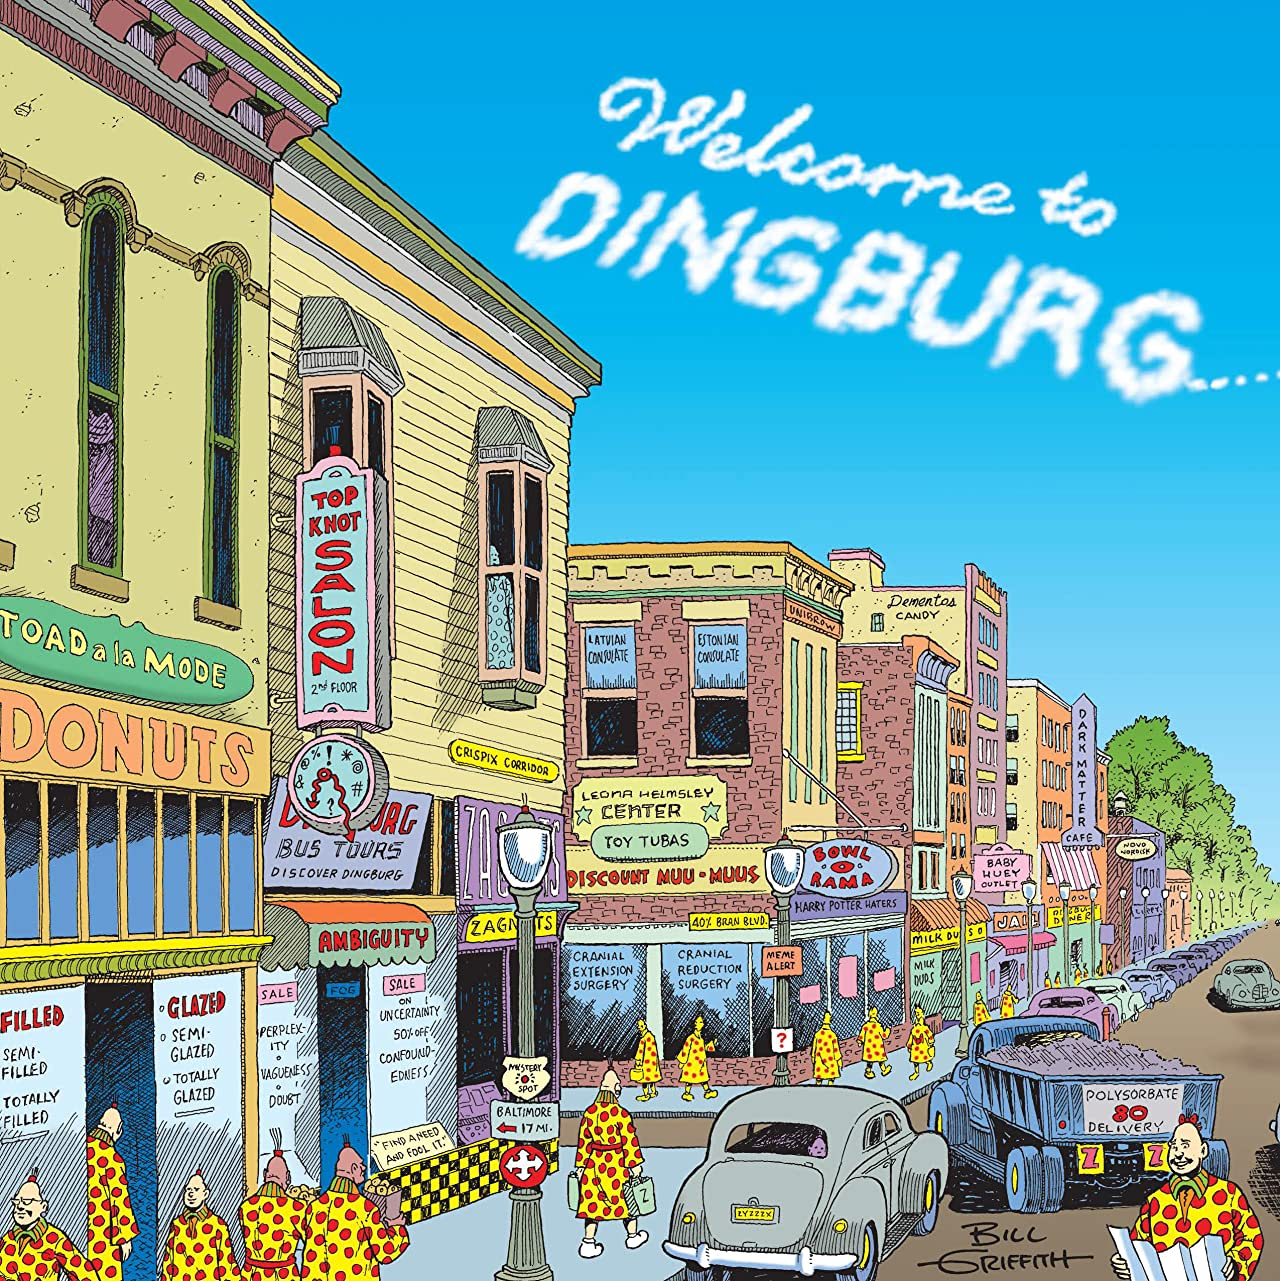 Zippy the Pinhead: Welcome to Dingburg